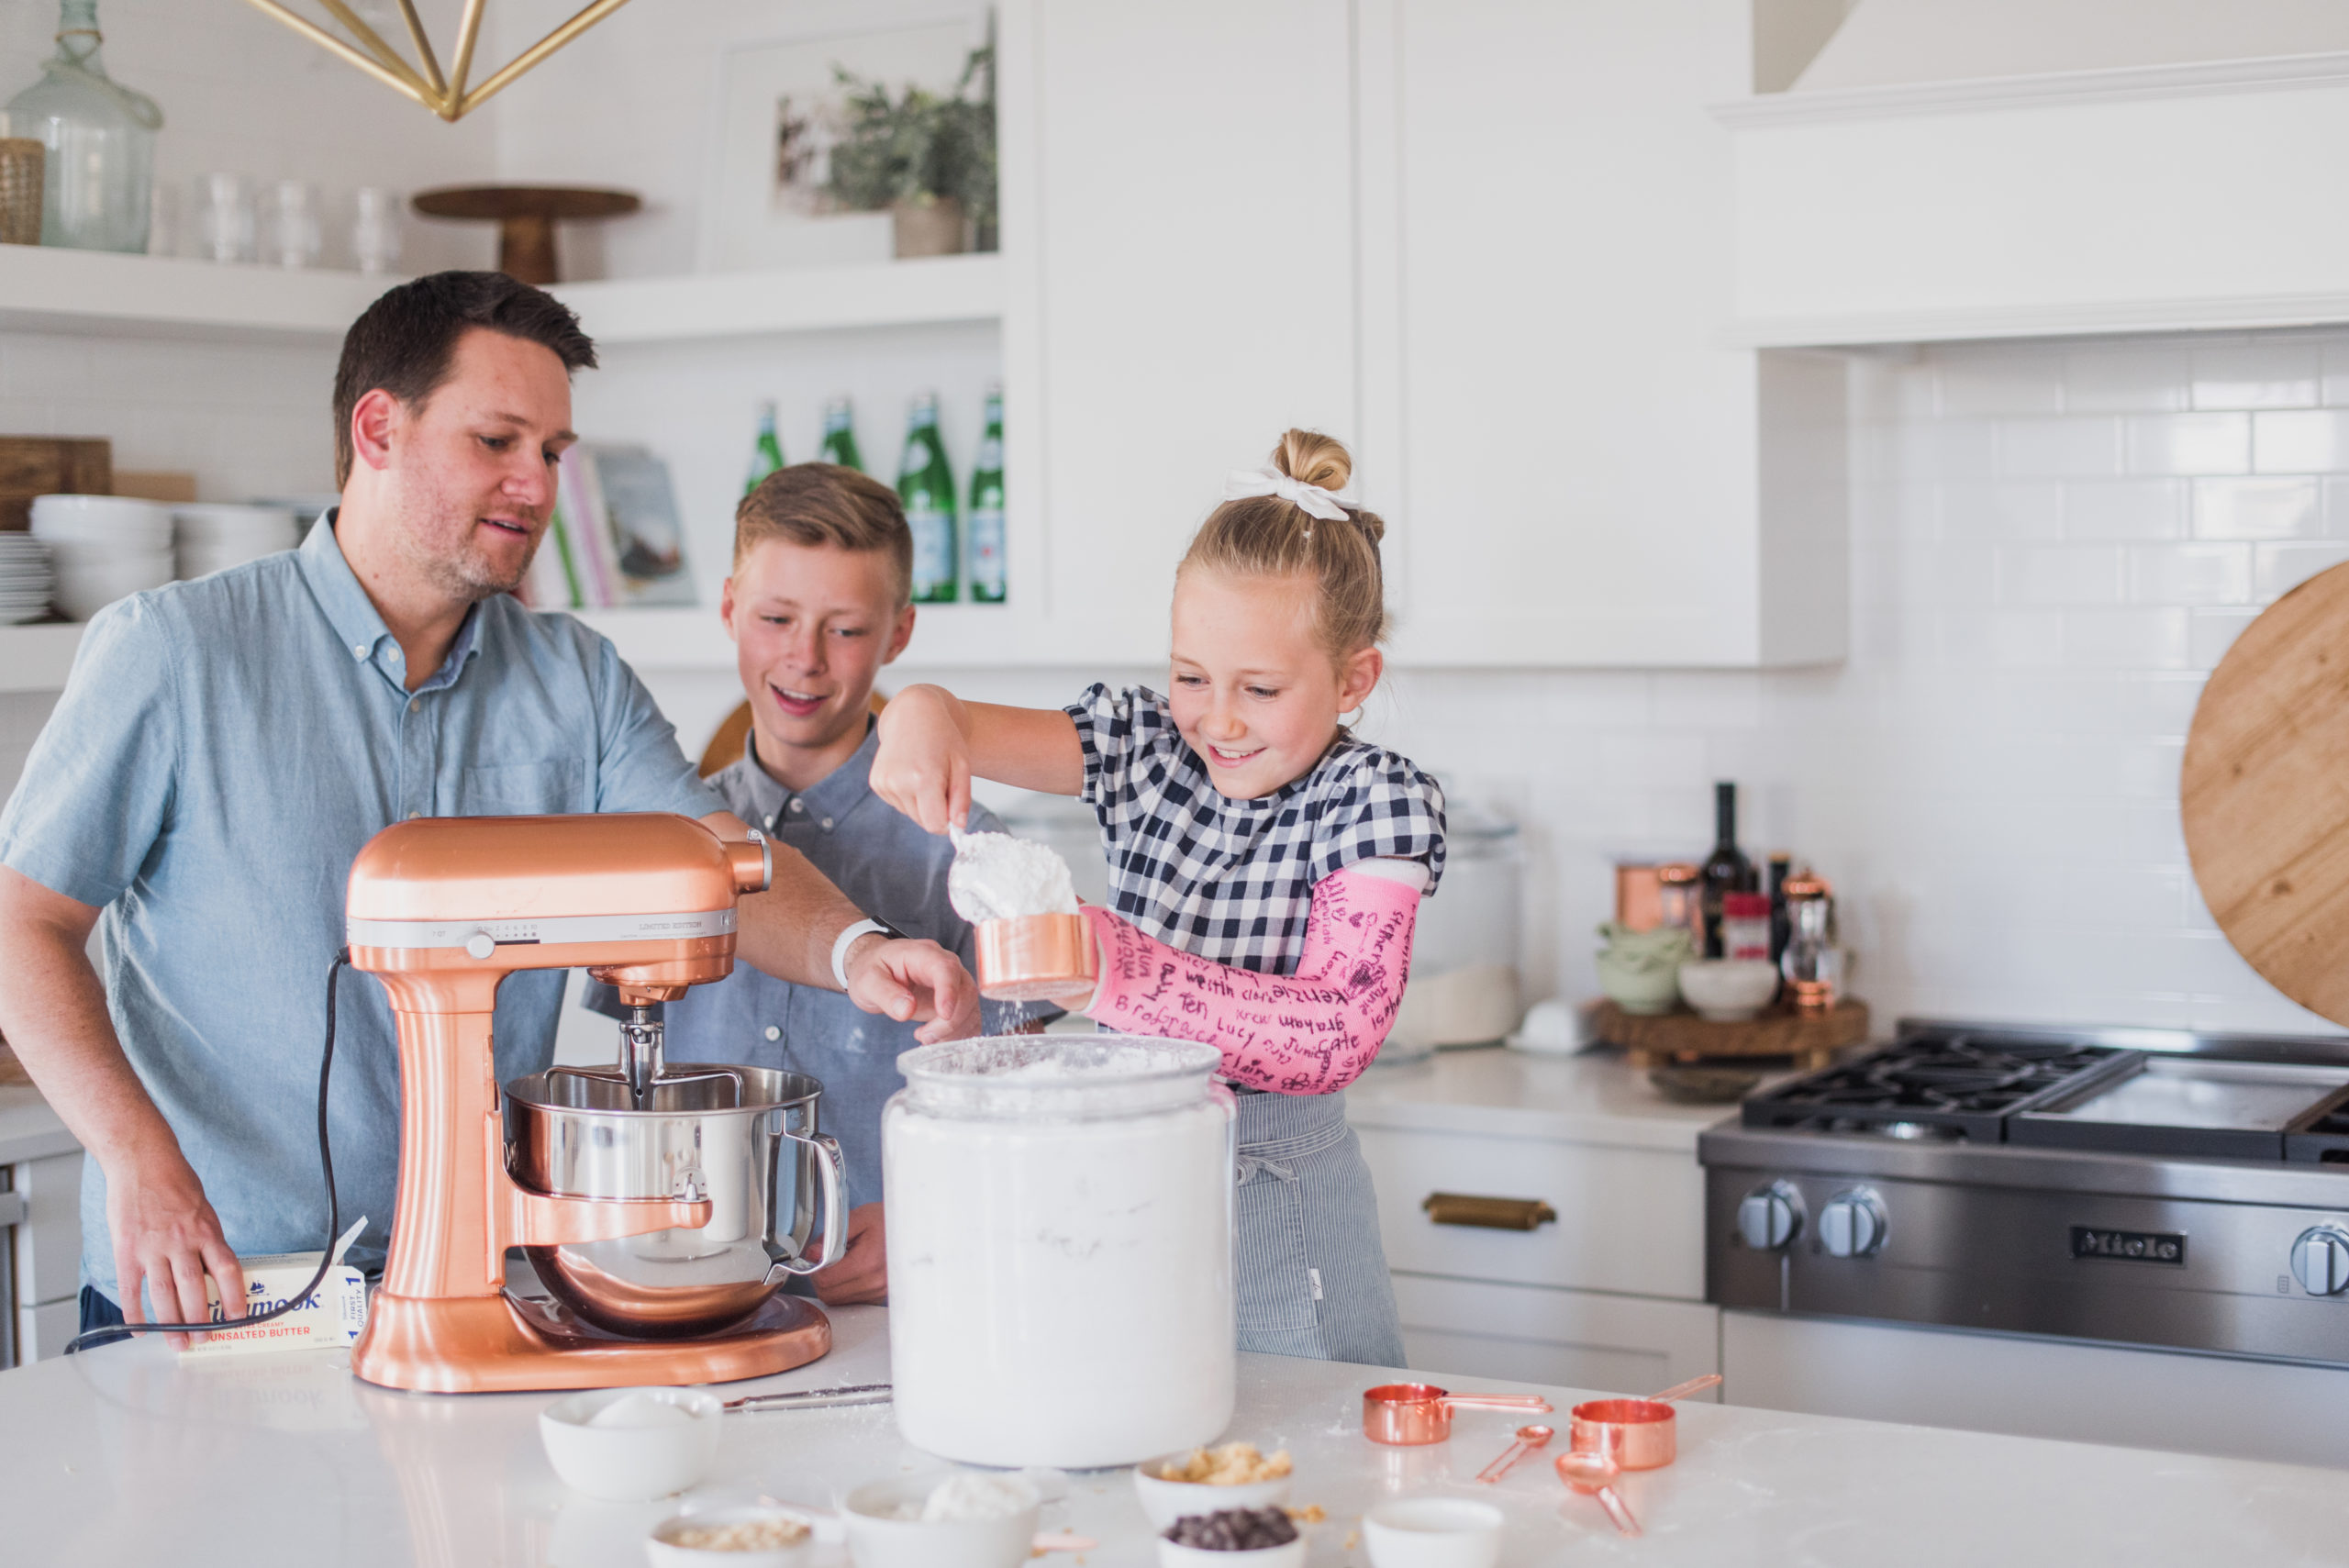 Best Cakes for Father's Day - Ryan shares his top cake picks for Father's Day: a line up of mostly chocolate and all delicious! #bestcakesforfathersday #fathersdaycakes #cakerecipes #fathersdaycakeideas #fathersdaydesserts